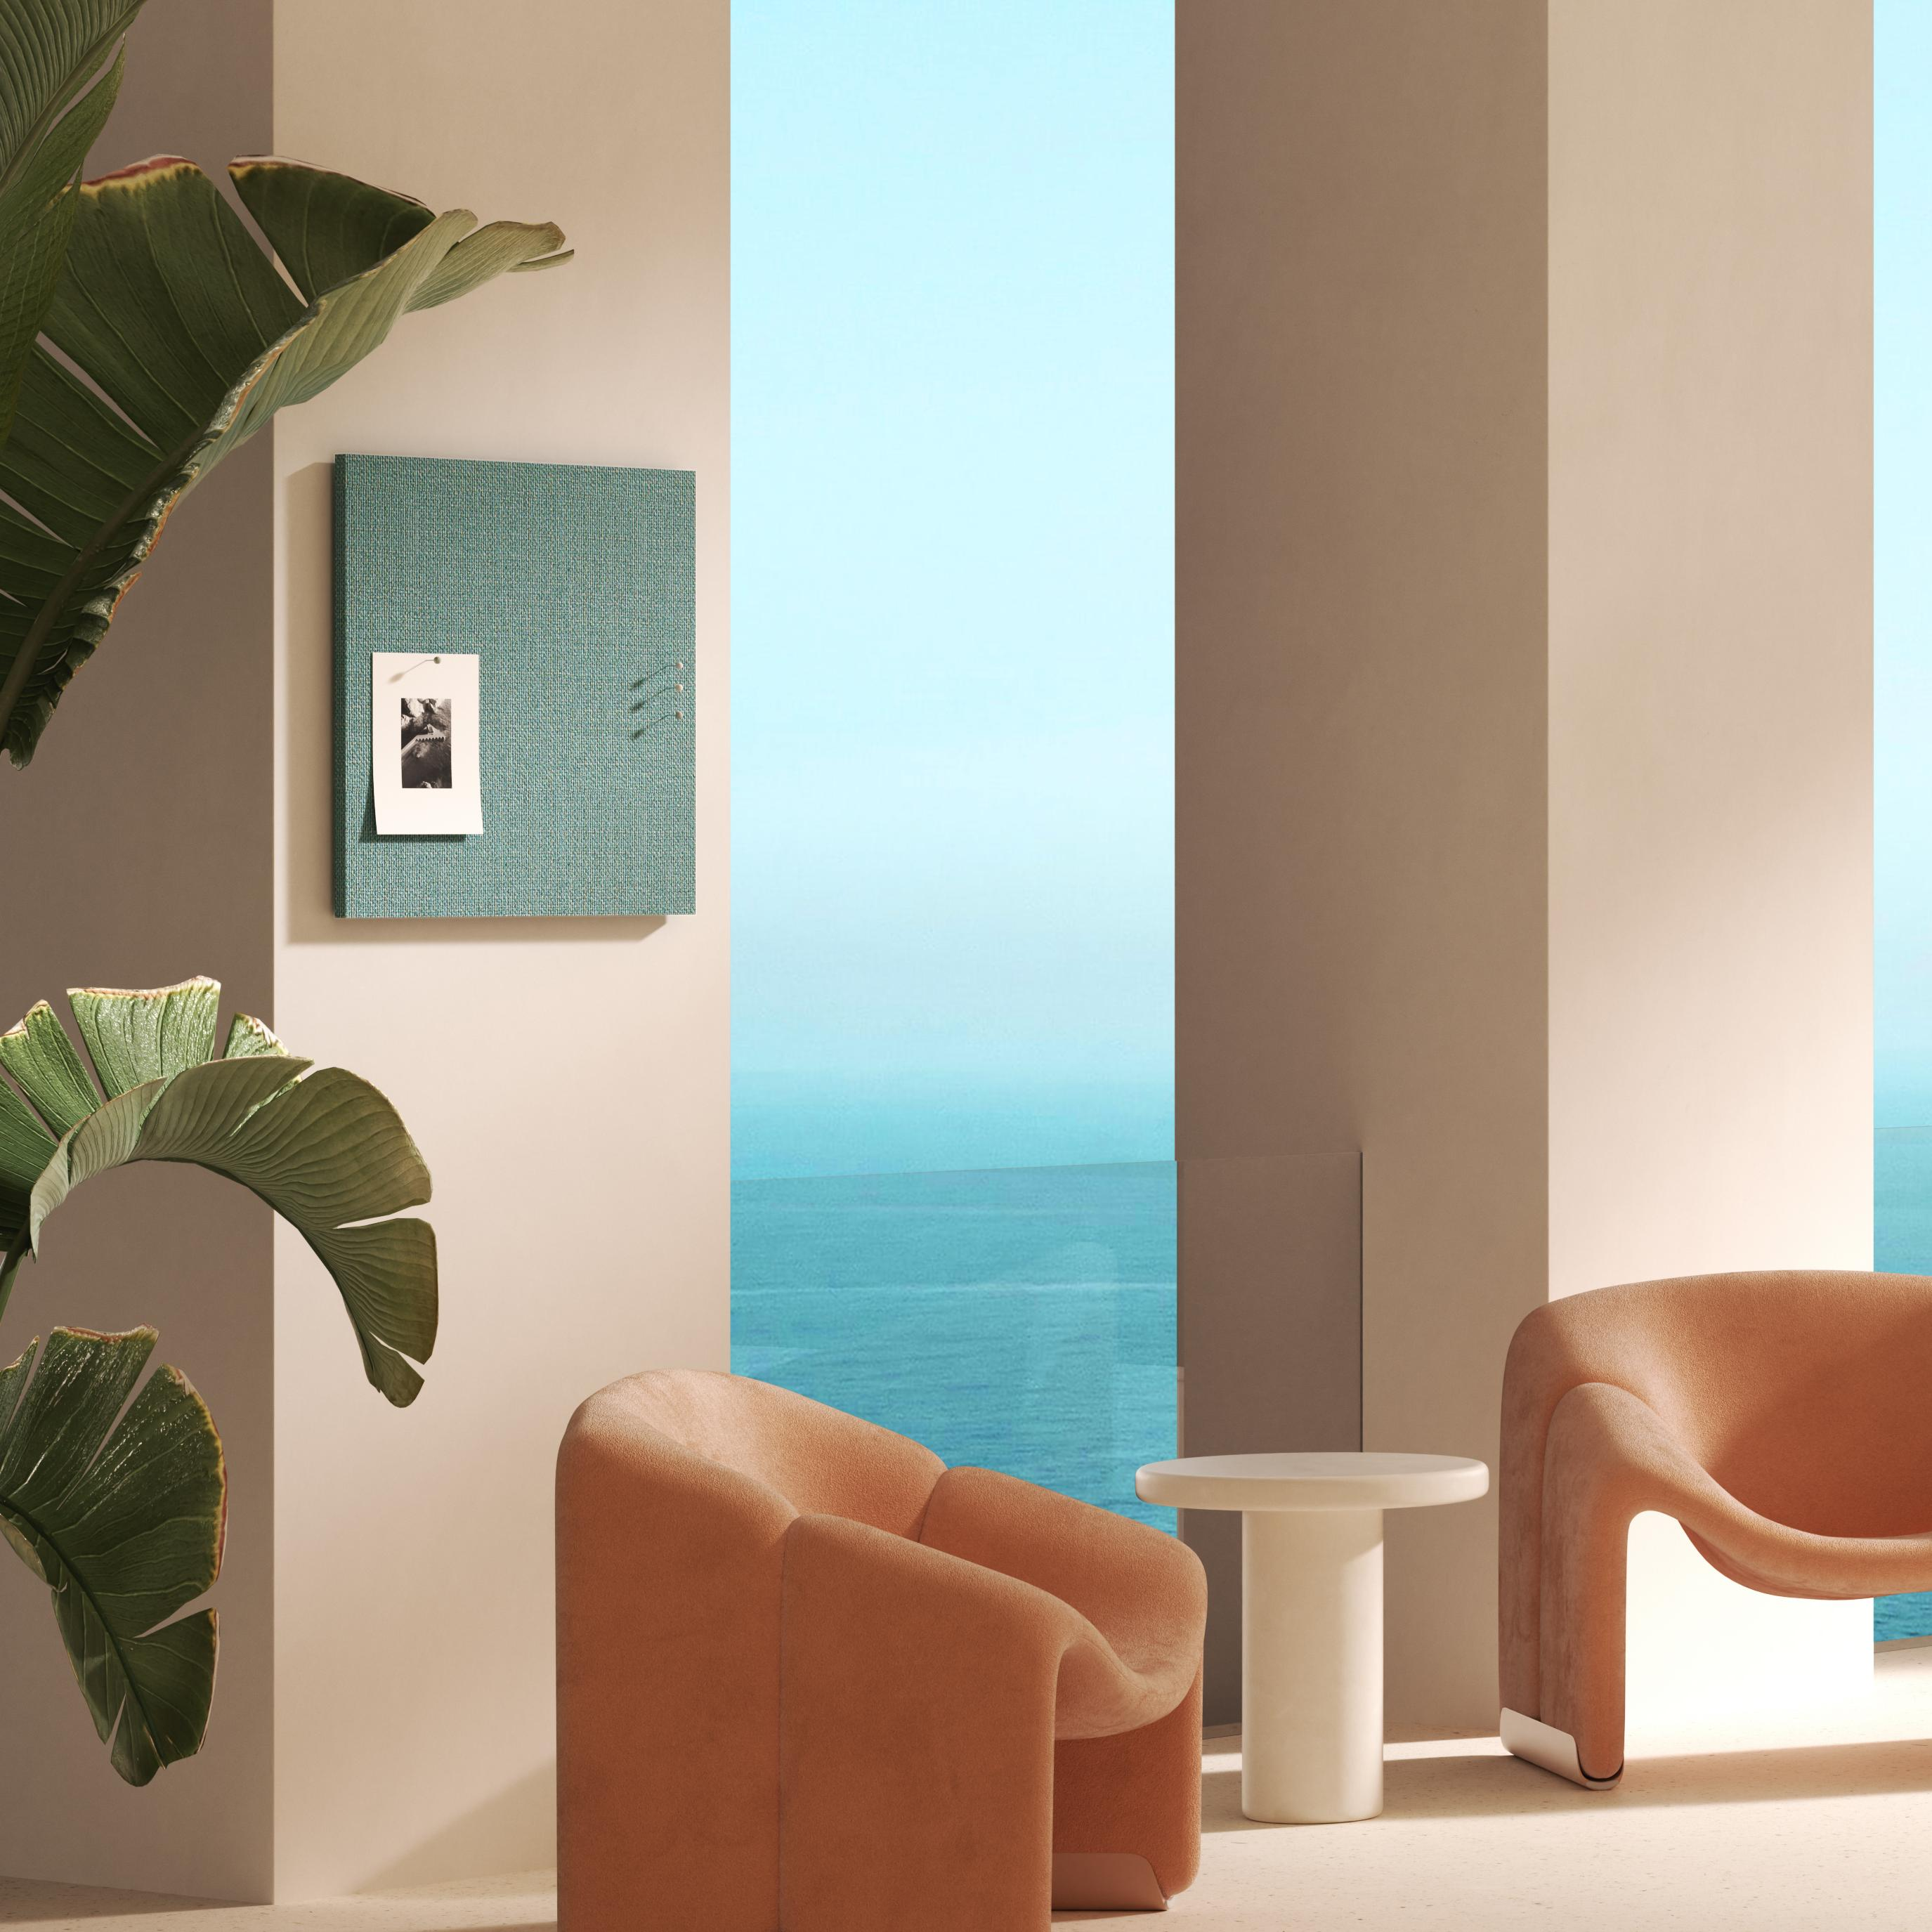 Dark turquoise tack board on wall with burnt orange chairs in room overlooking water